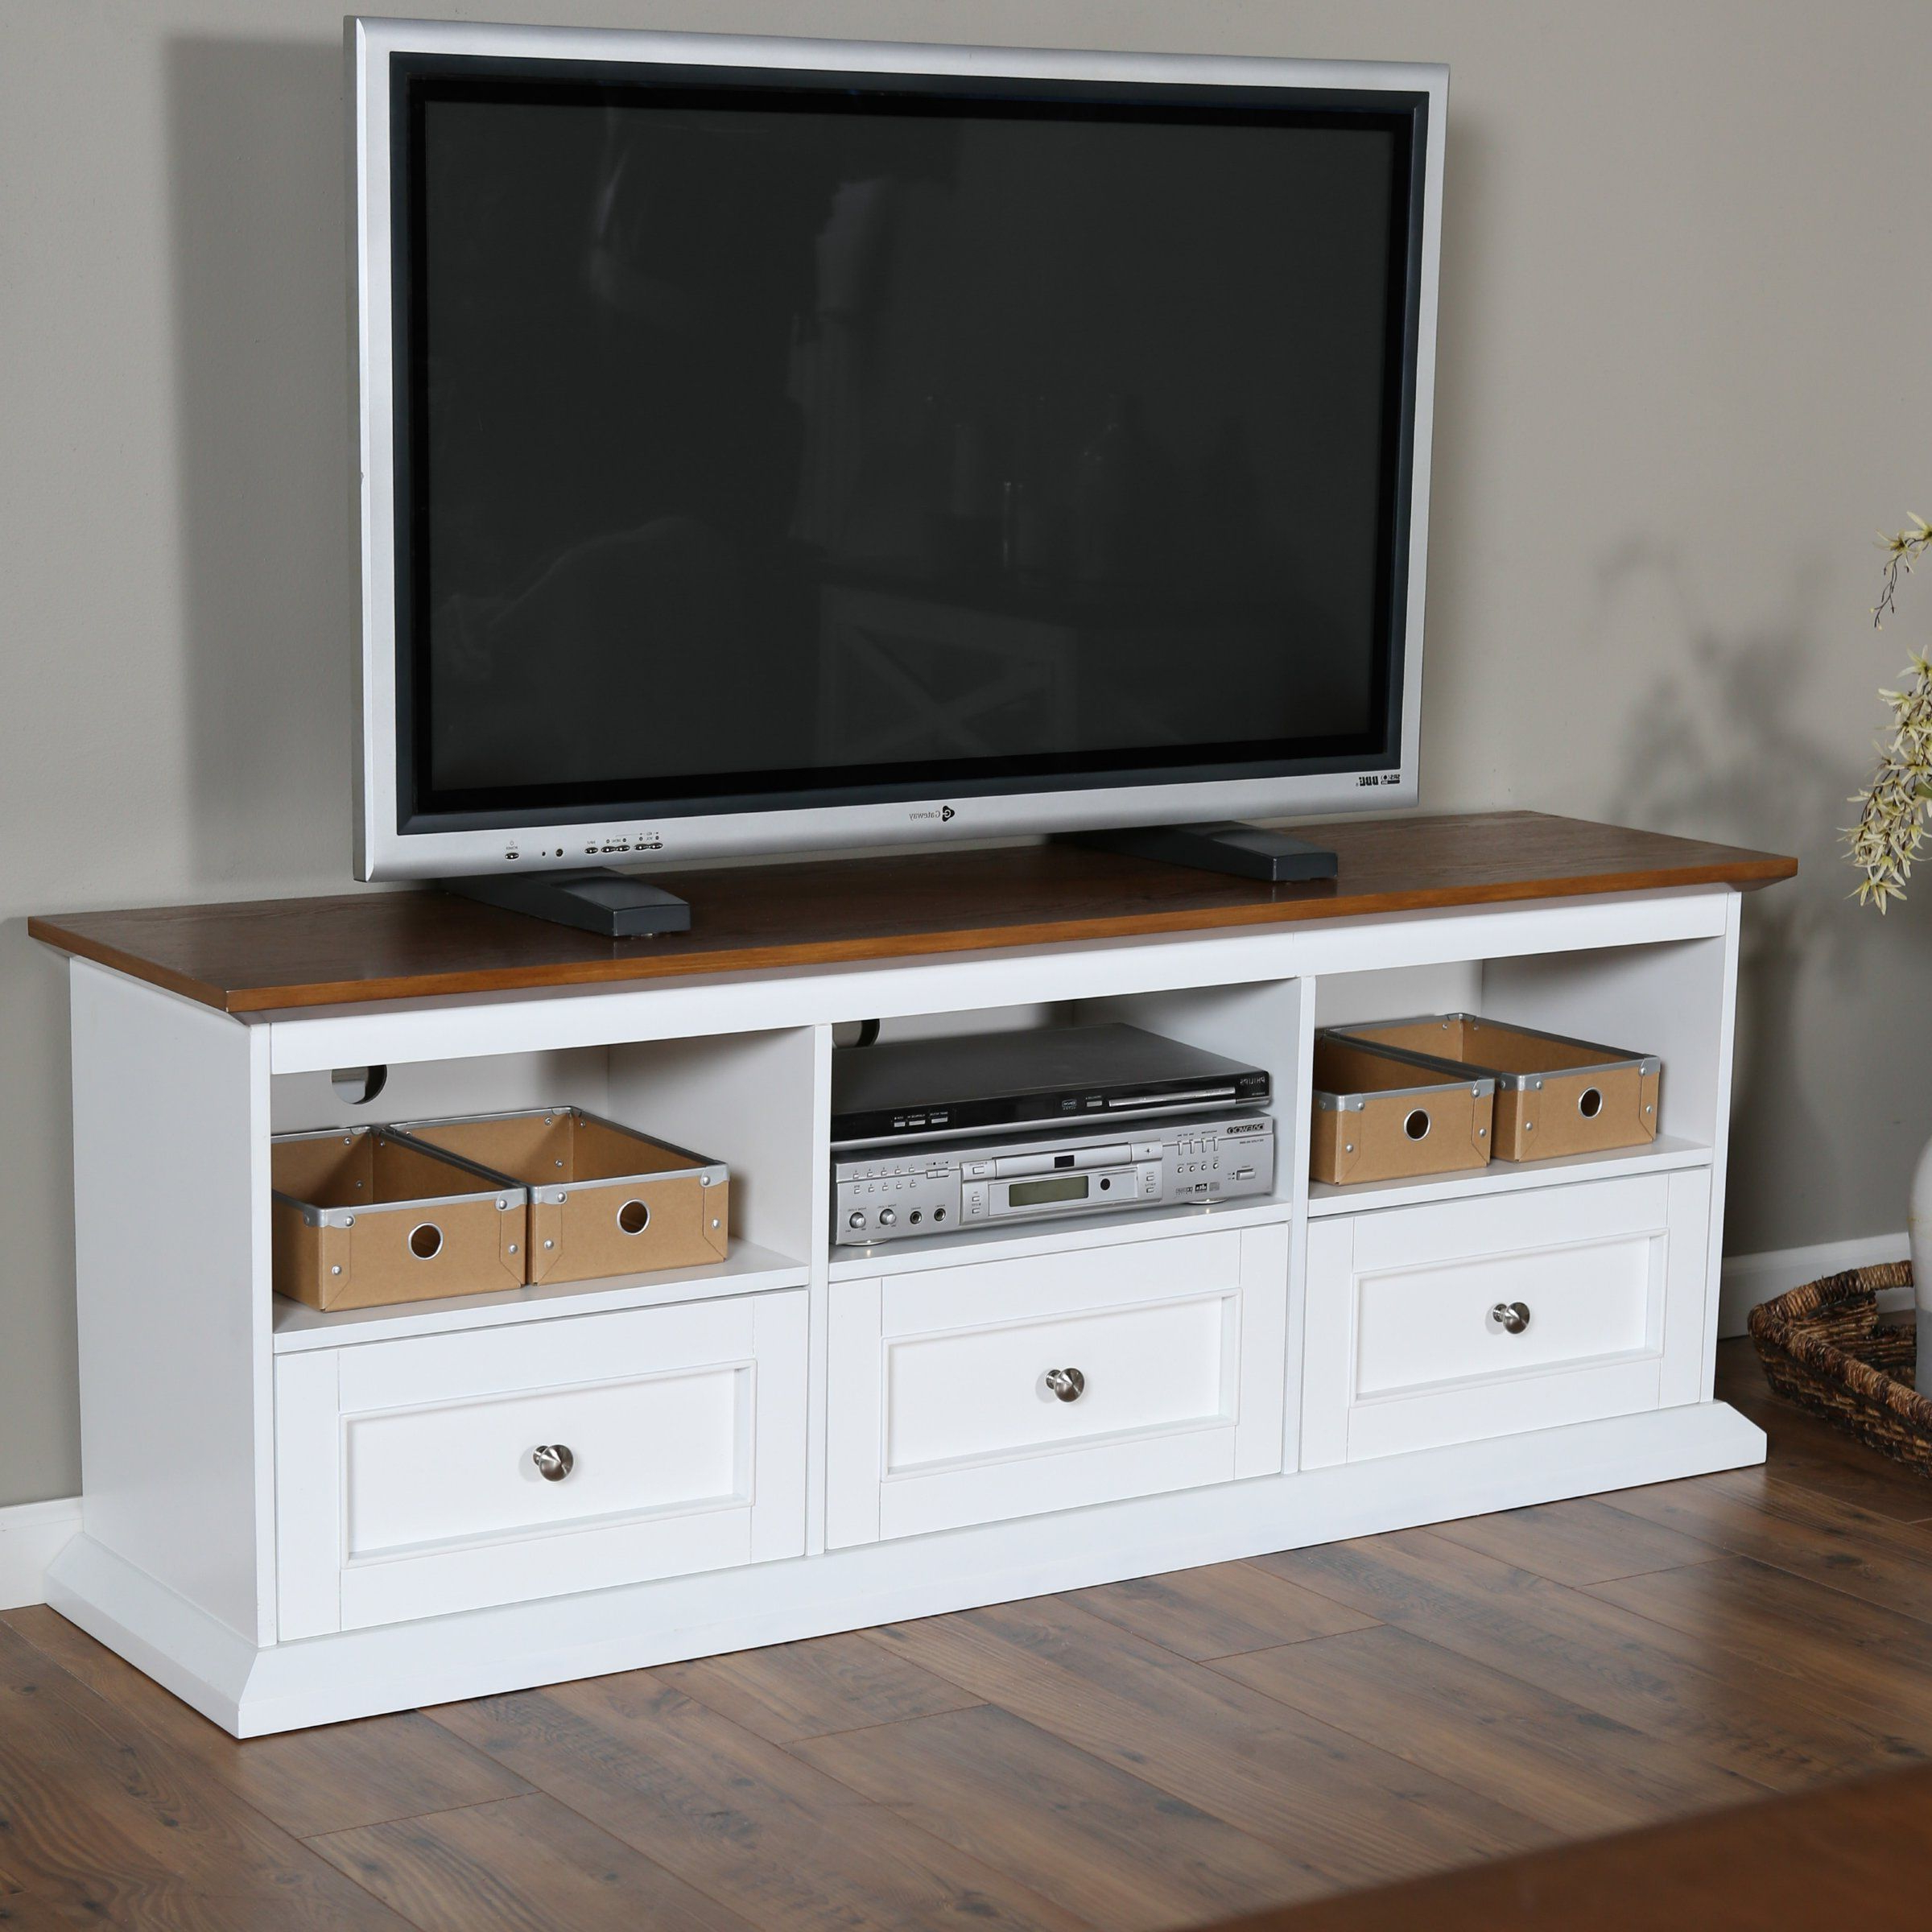 White And Wood Tv Stands Regarding Trendy Belham Living Hampton Tv Stand With Drawers – White/oak – Tv Stands (View 15 of 20)